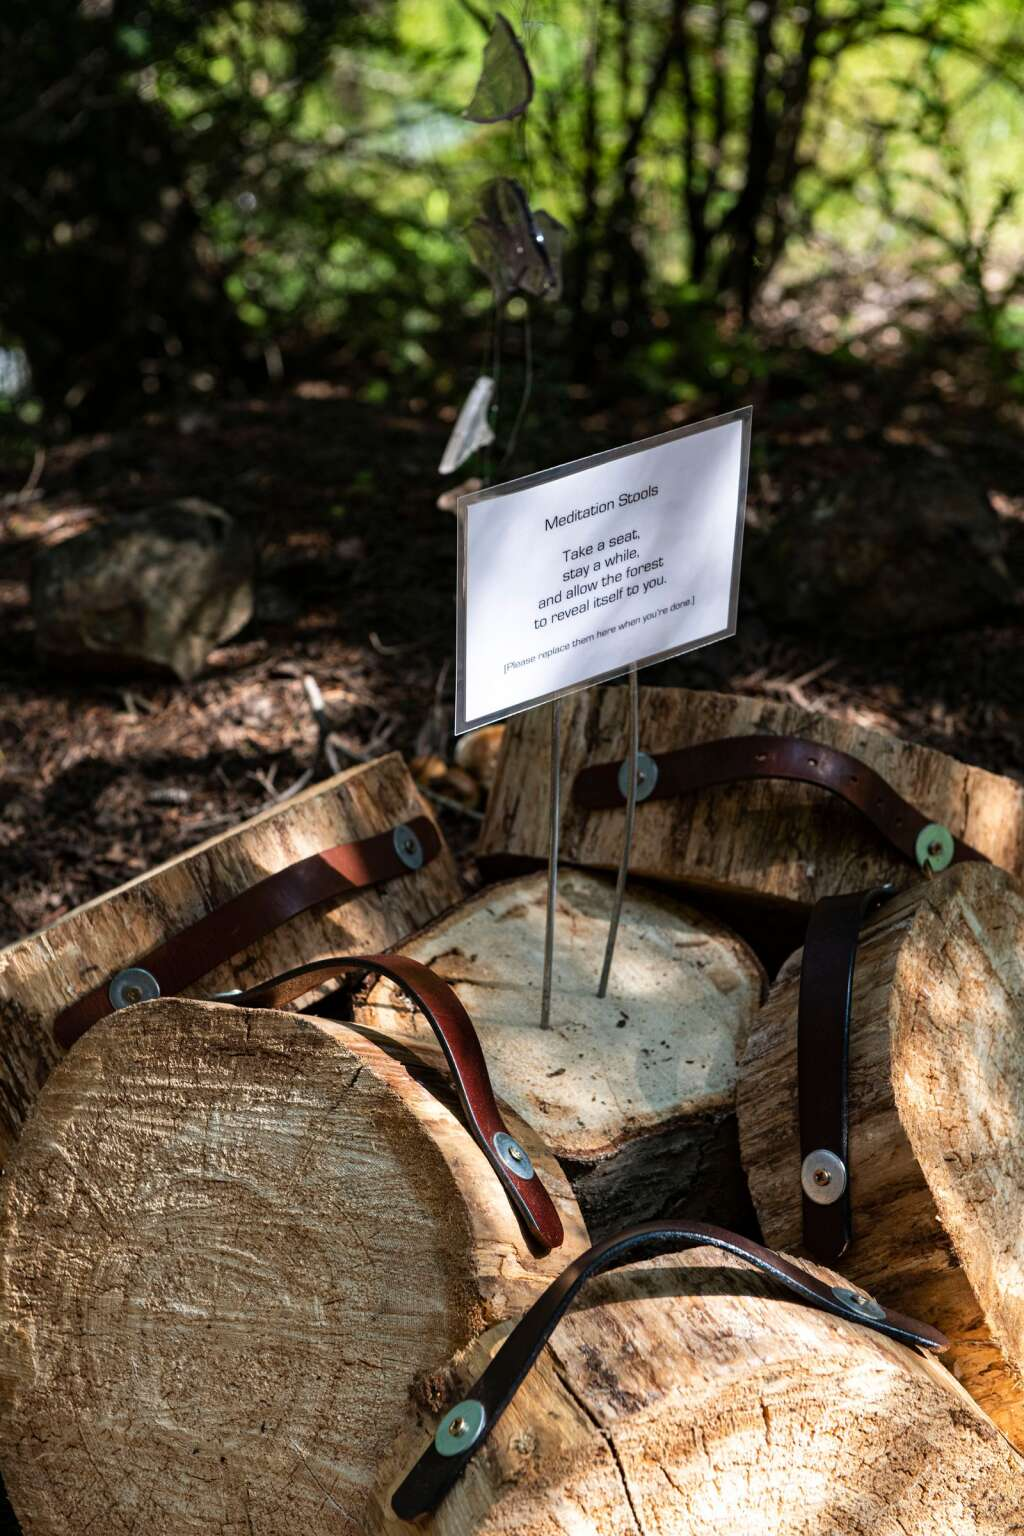 """Meditation stools are piled for use in the """"Earthly Palace Forest Shrine"""" created by local artist Lara Whitley for the """"Aspen Space Station"""" on the backside of Aspen Mountain.  (Kelsey Brunner/The Aspen Times)"""